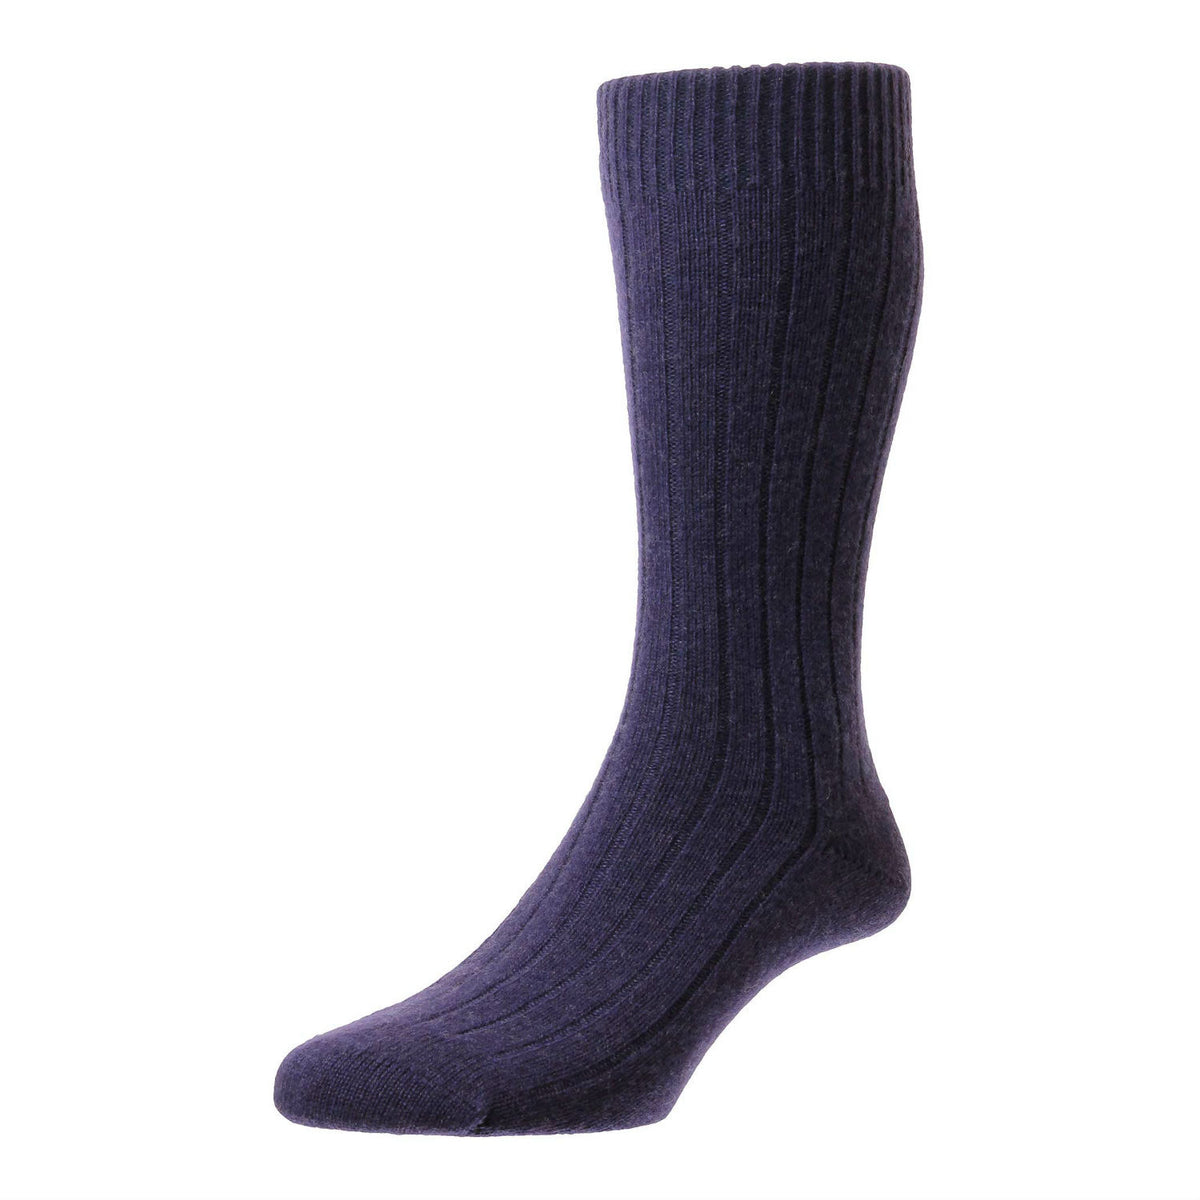 Purple Plum | Mens Cashmere Socks | Made in England | Calf Length Sock | buy now at The Cashmere Choice London